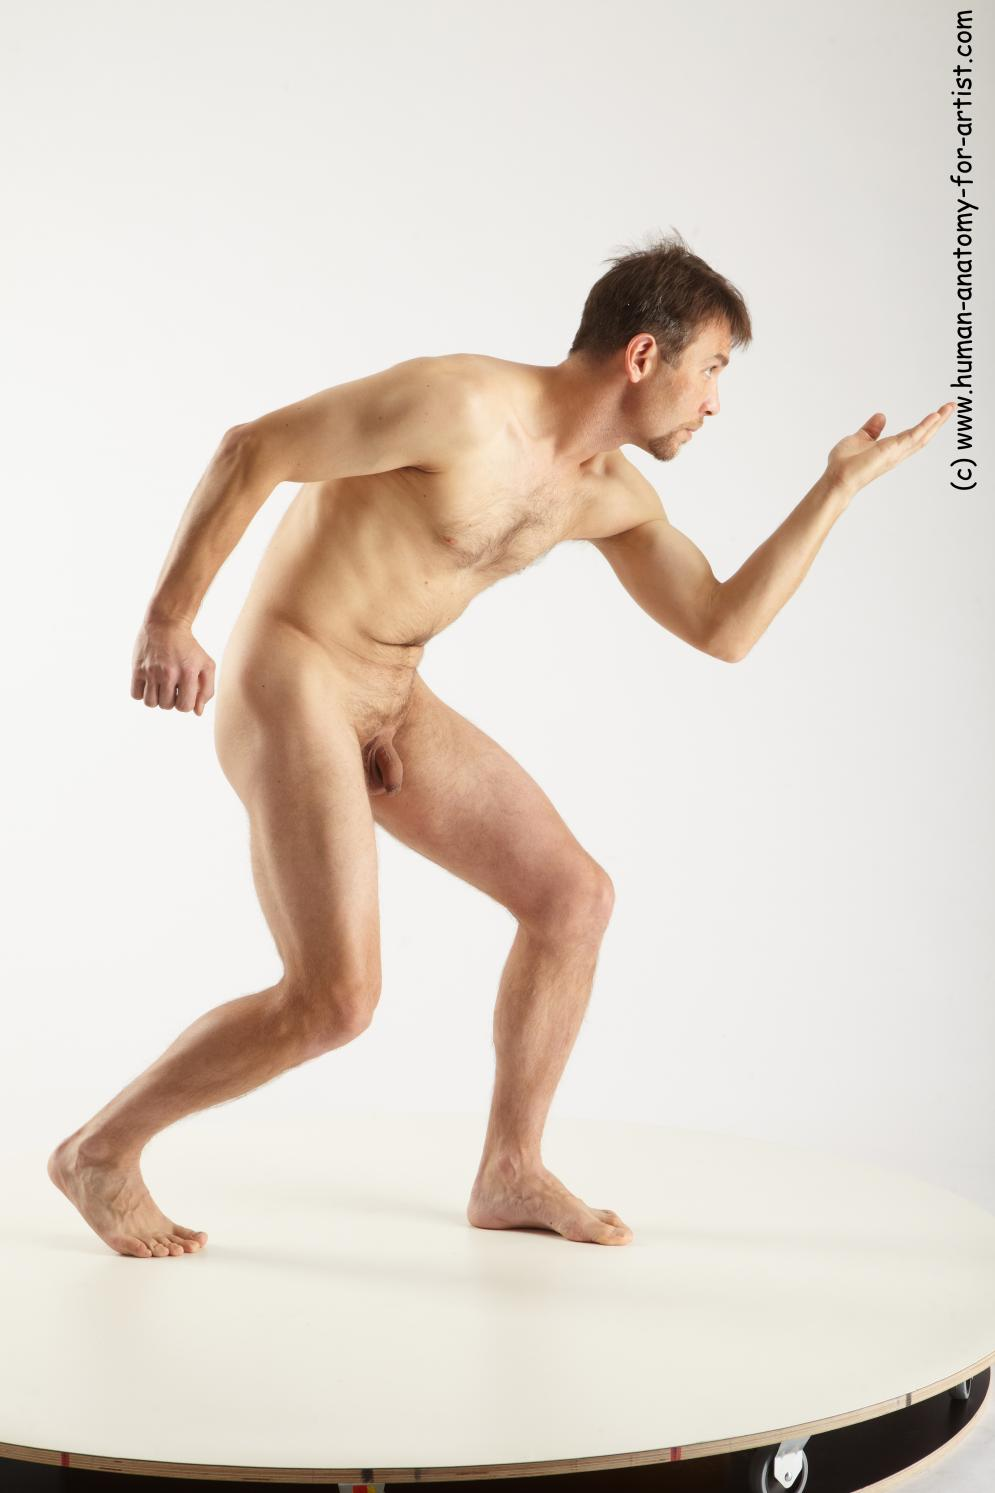 Image from Male sitting poses - metod_01.jpg